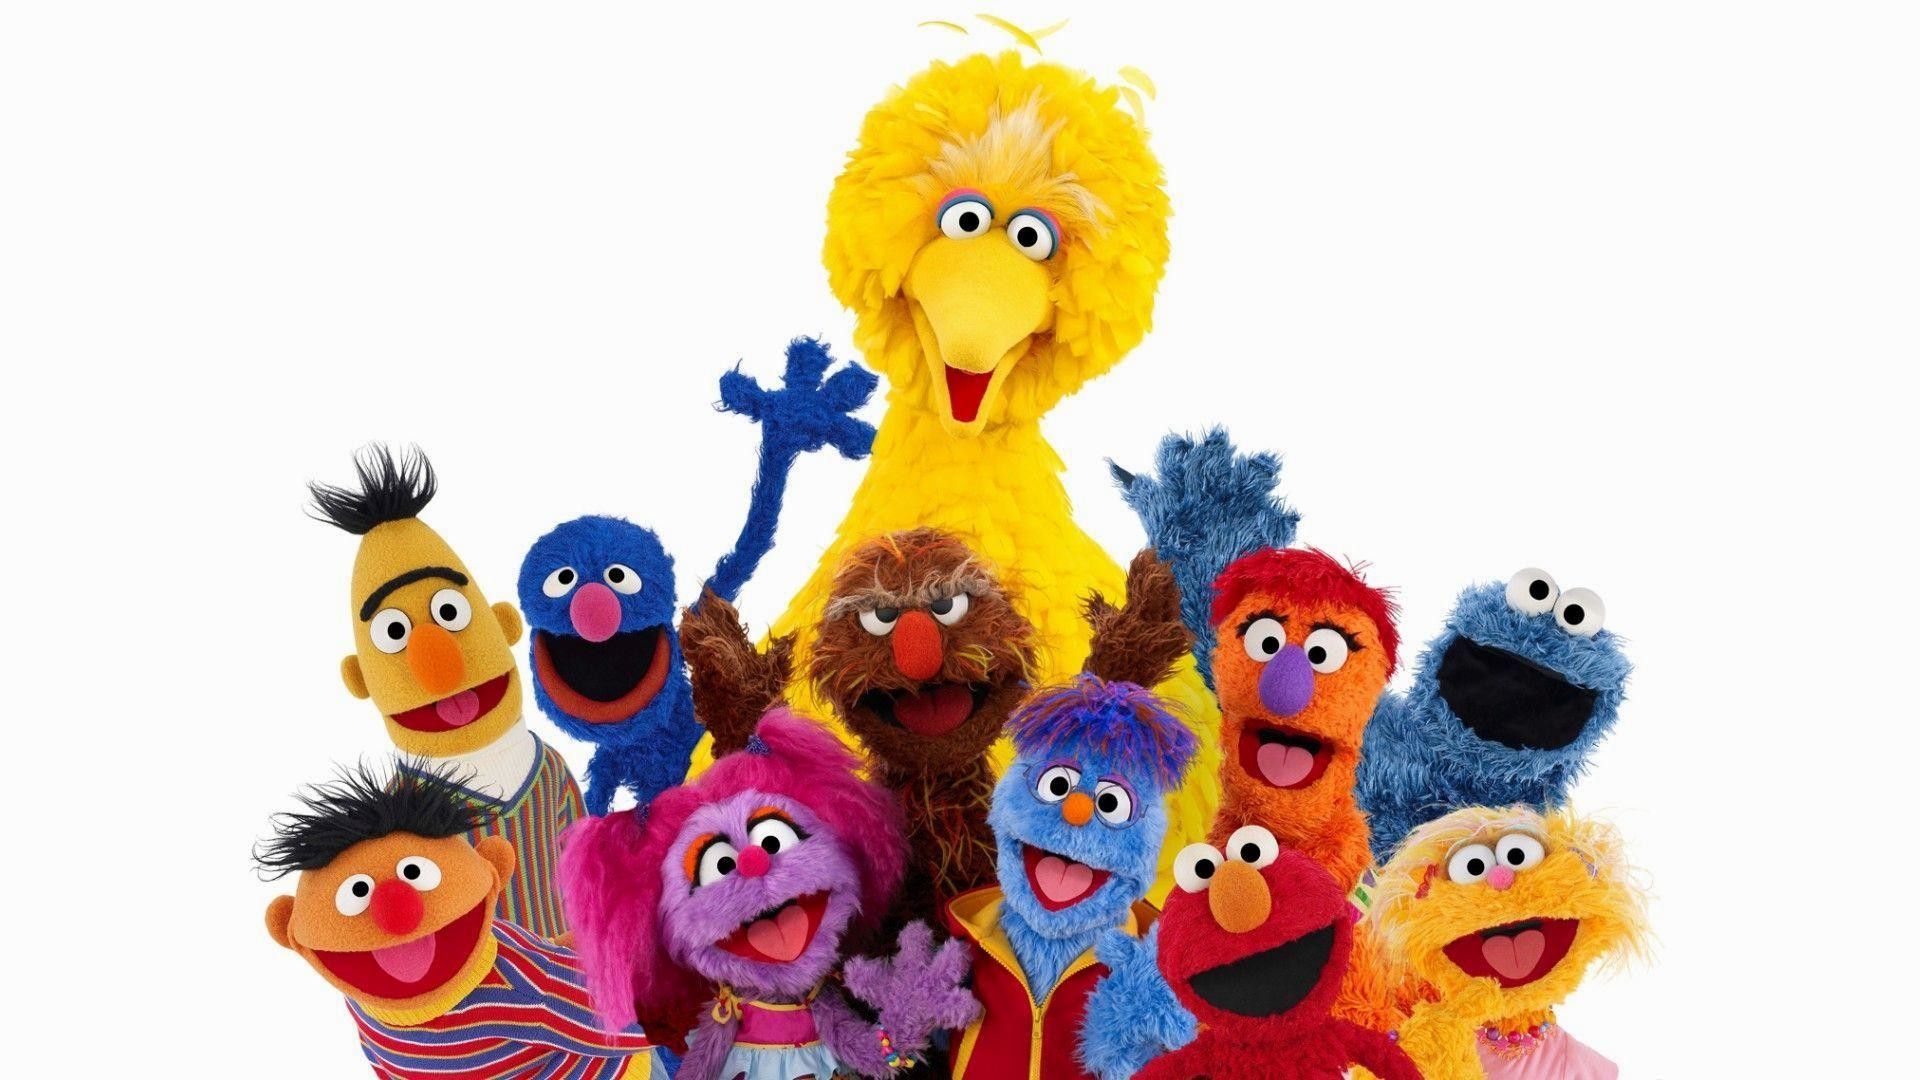 Mobile IPad 1024x768 Source Sesame Street Wallpaper 74 Images